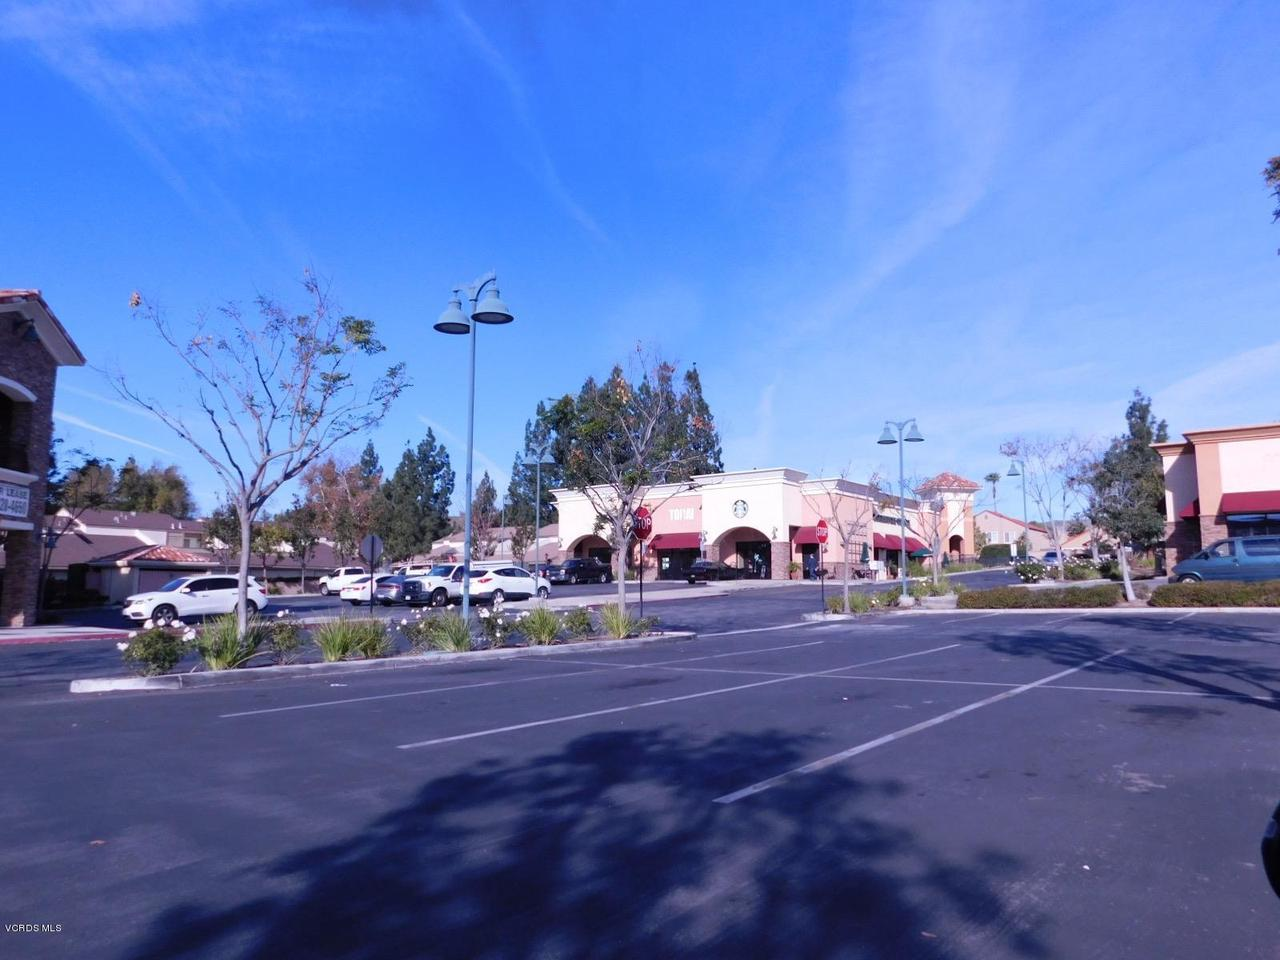 6489 DUKE, Moorpark, CA 93021 - Q_Starbucks half mile walk